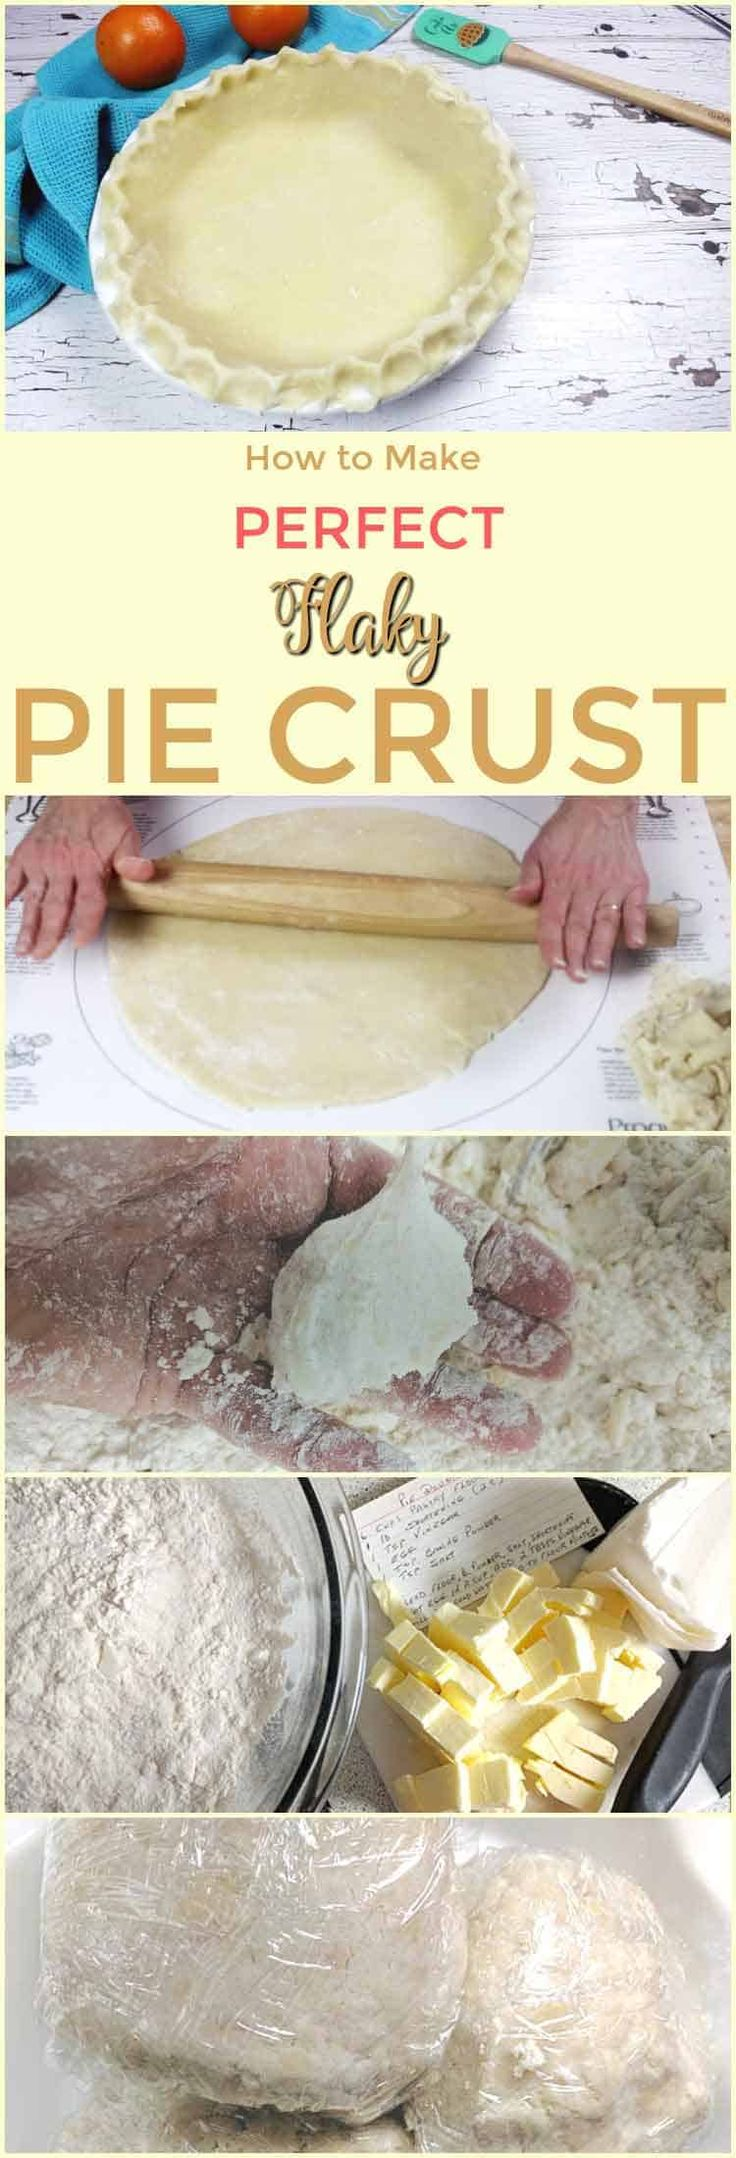 What is the secret to perfect flaky pie crust you ask? This recipe, video and step-by-step instructions will answer that question and also provide a free e-book How To Make Perfect Pie Crust. via @https://www.pinterest.com/Pieandpastrygal/